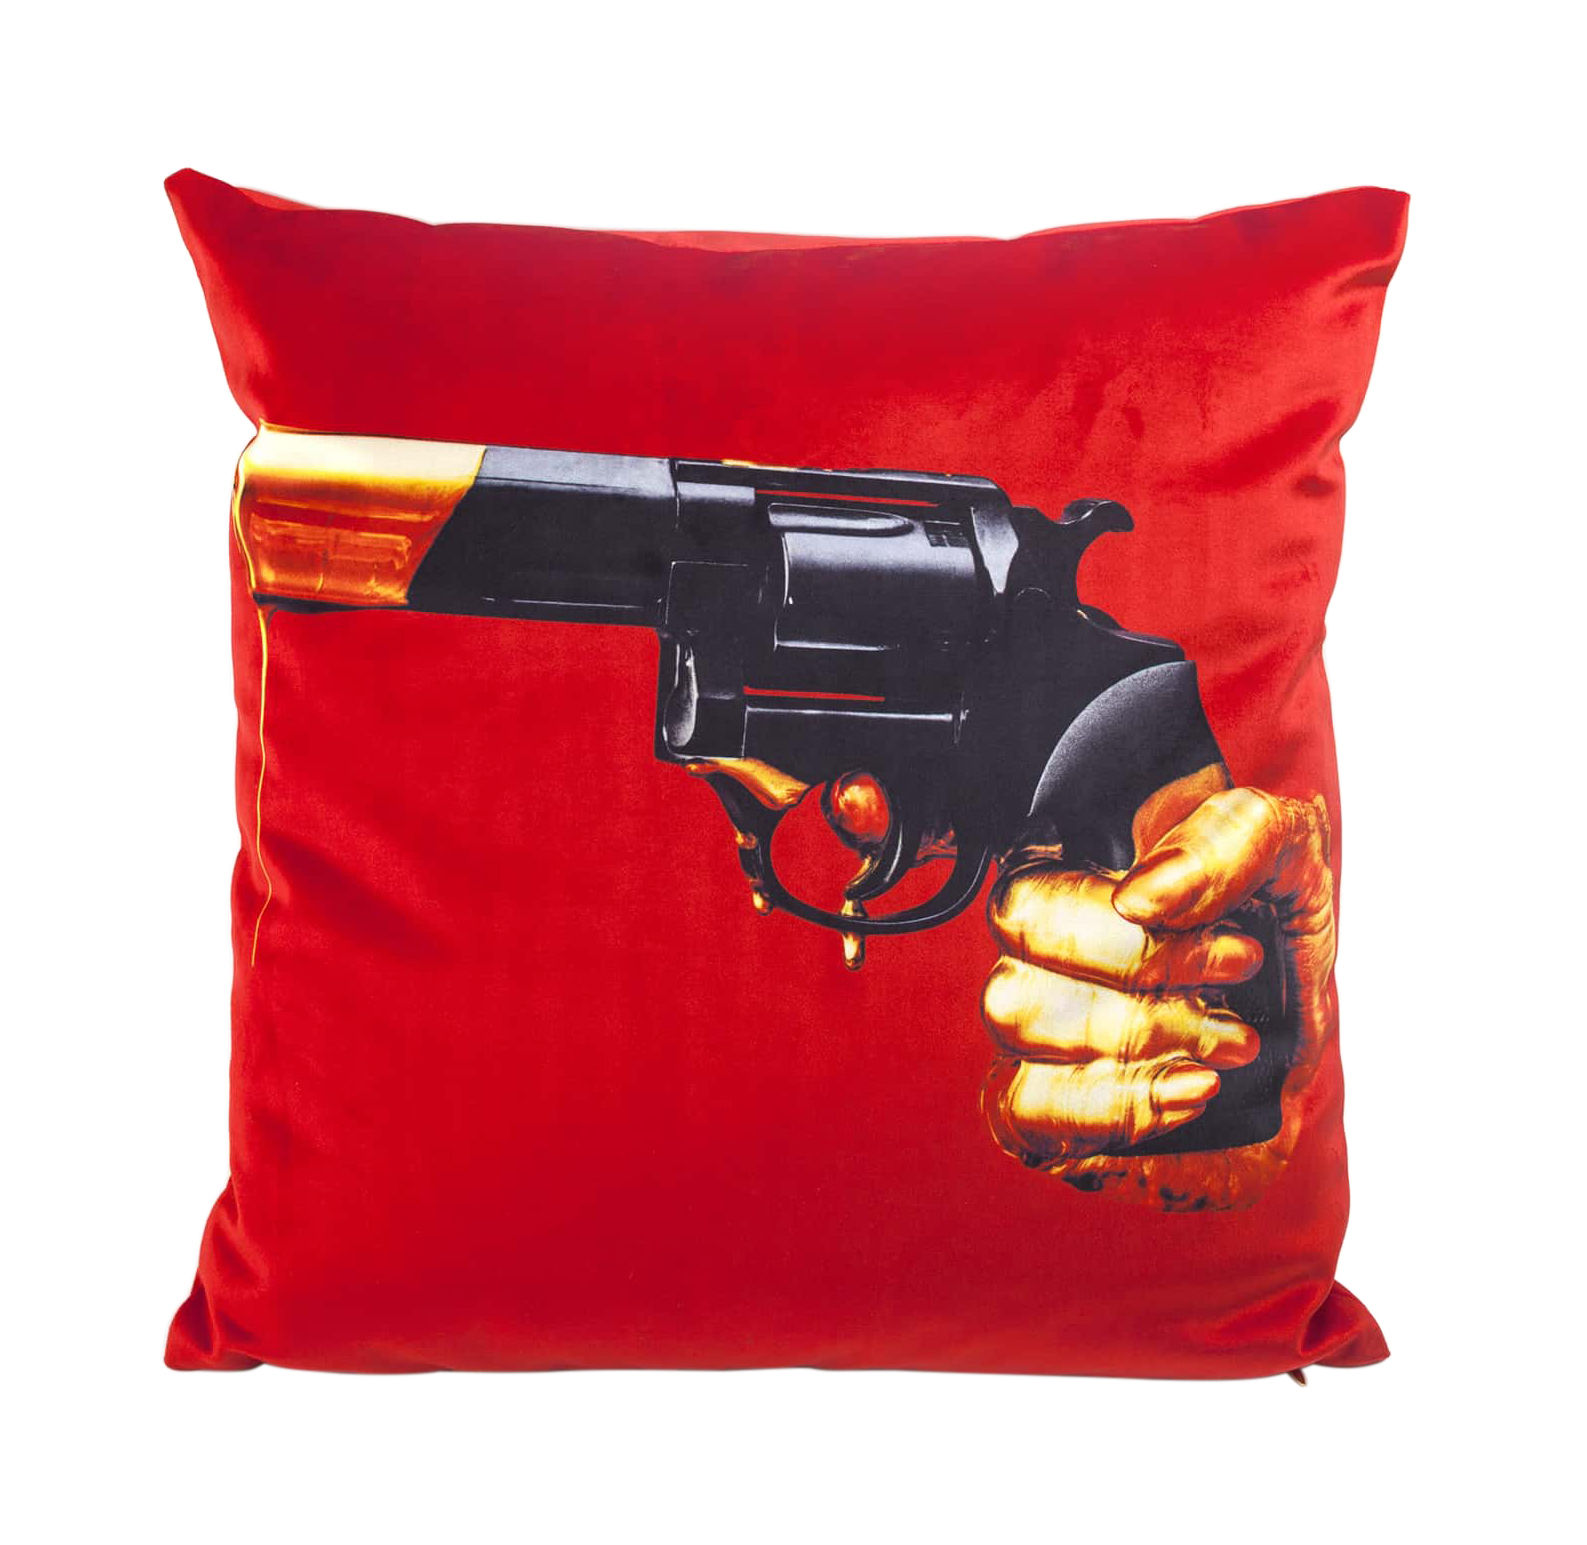 Decoration - Cushions & Poufs - Toiletpaper Cushion - / Revolver - 50 x 50 cm by Seletti - revolver / Red - Feathers, Polyester fabric